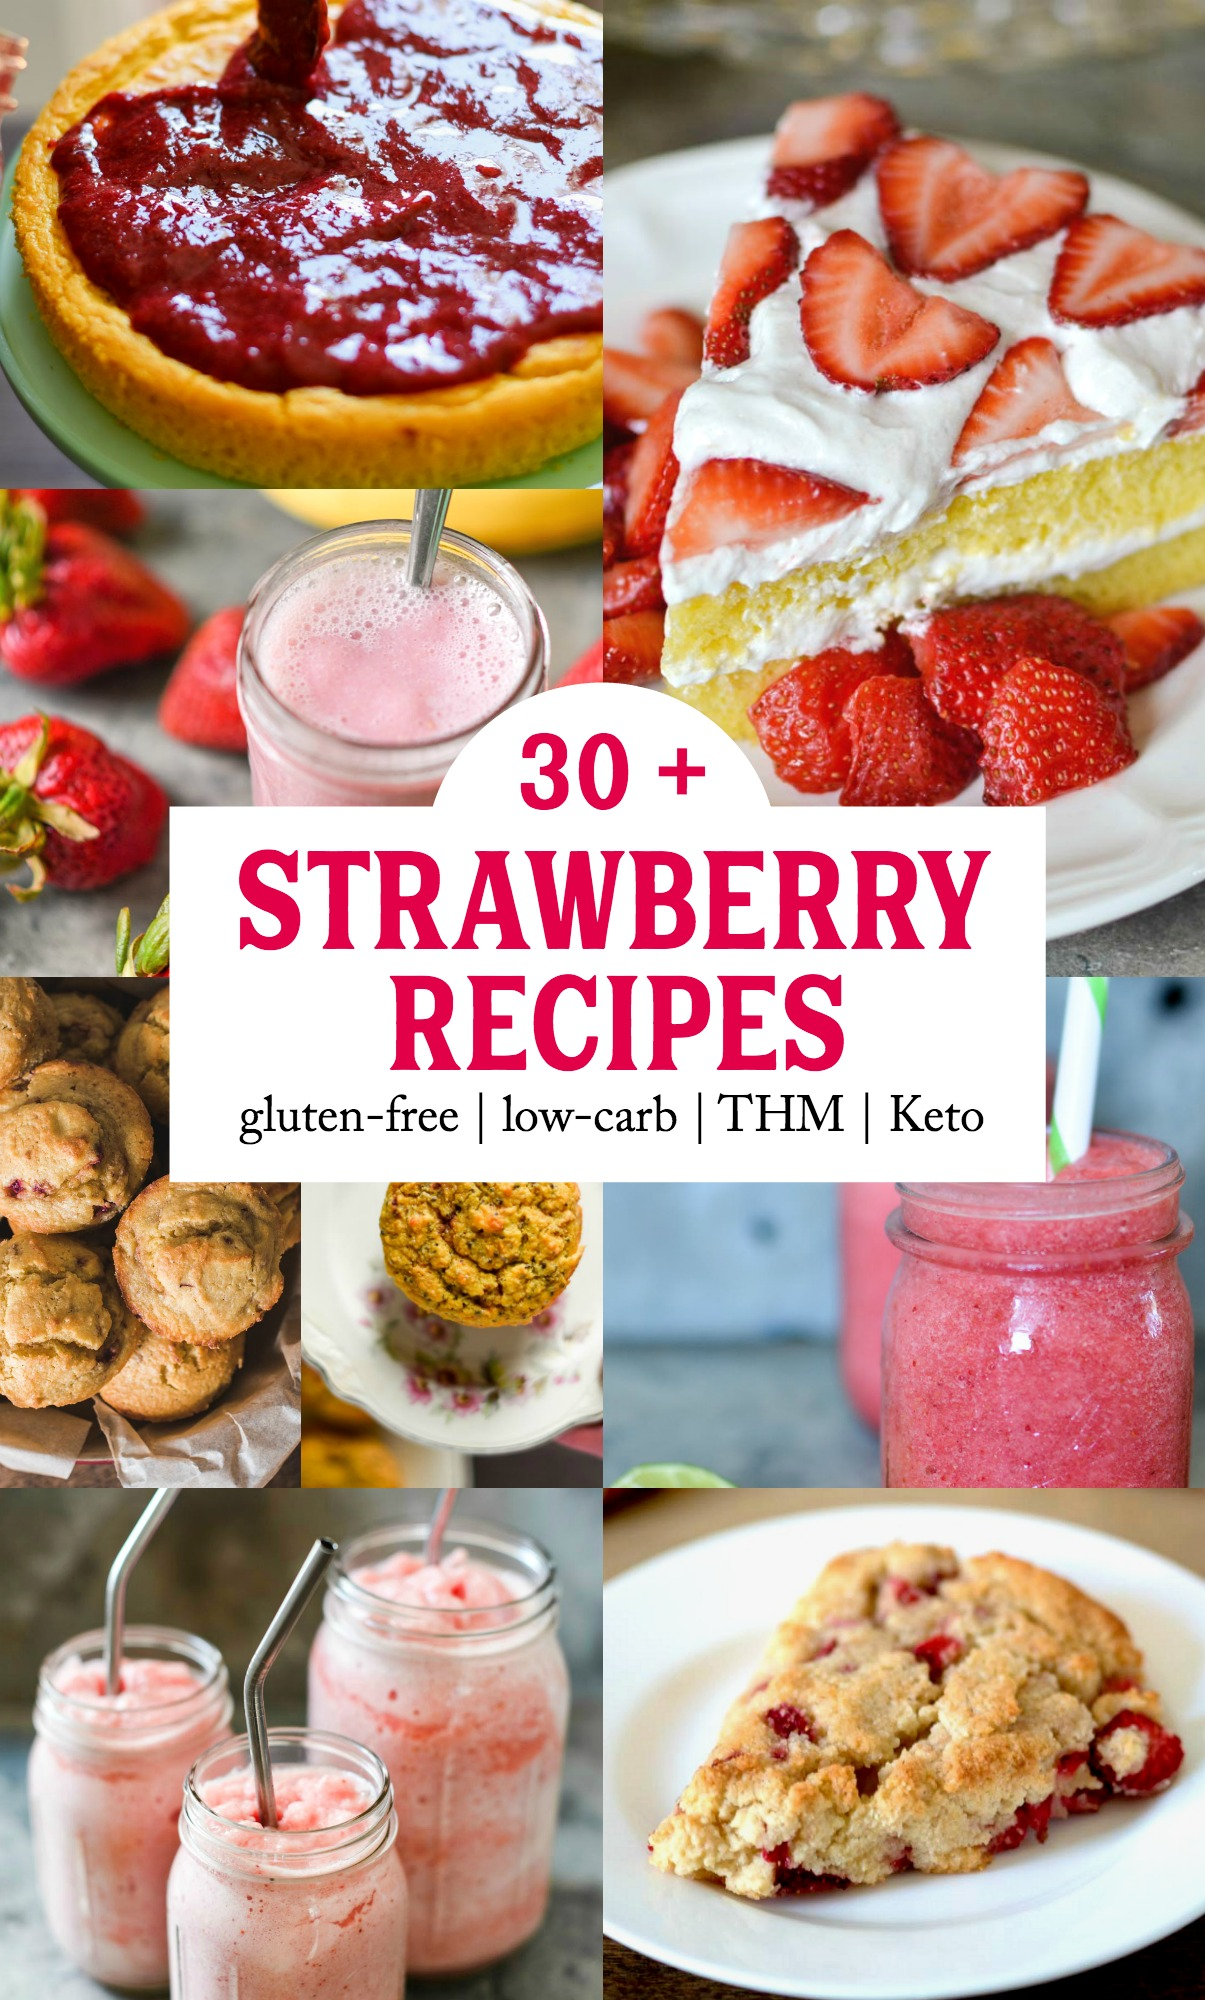 30+ Strawberry Recipes